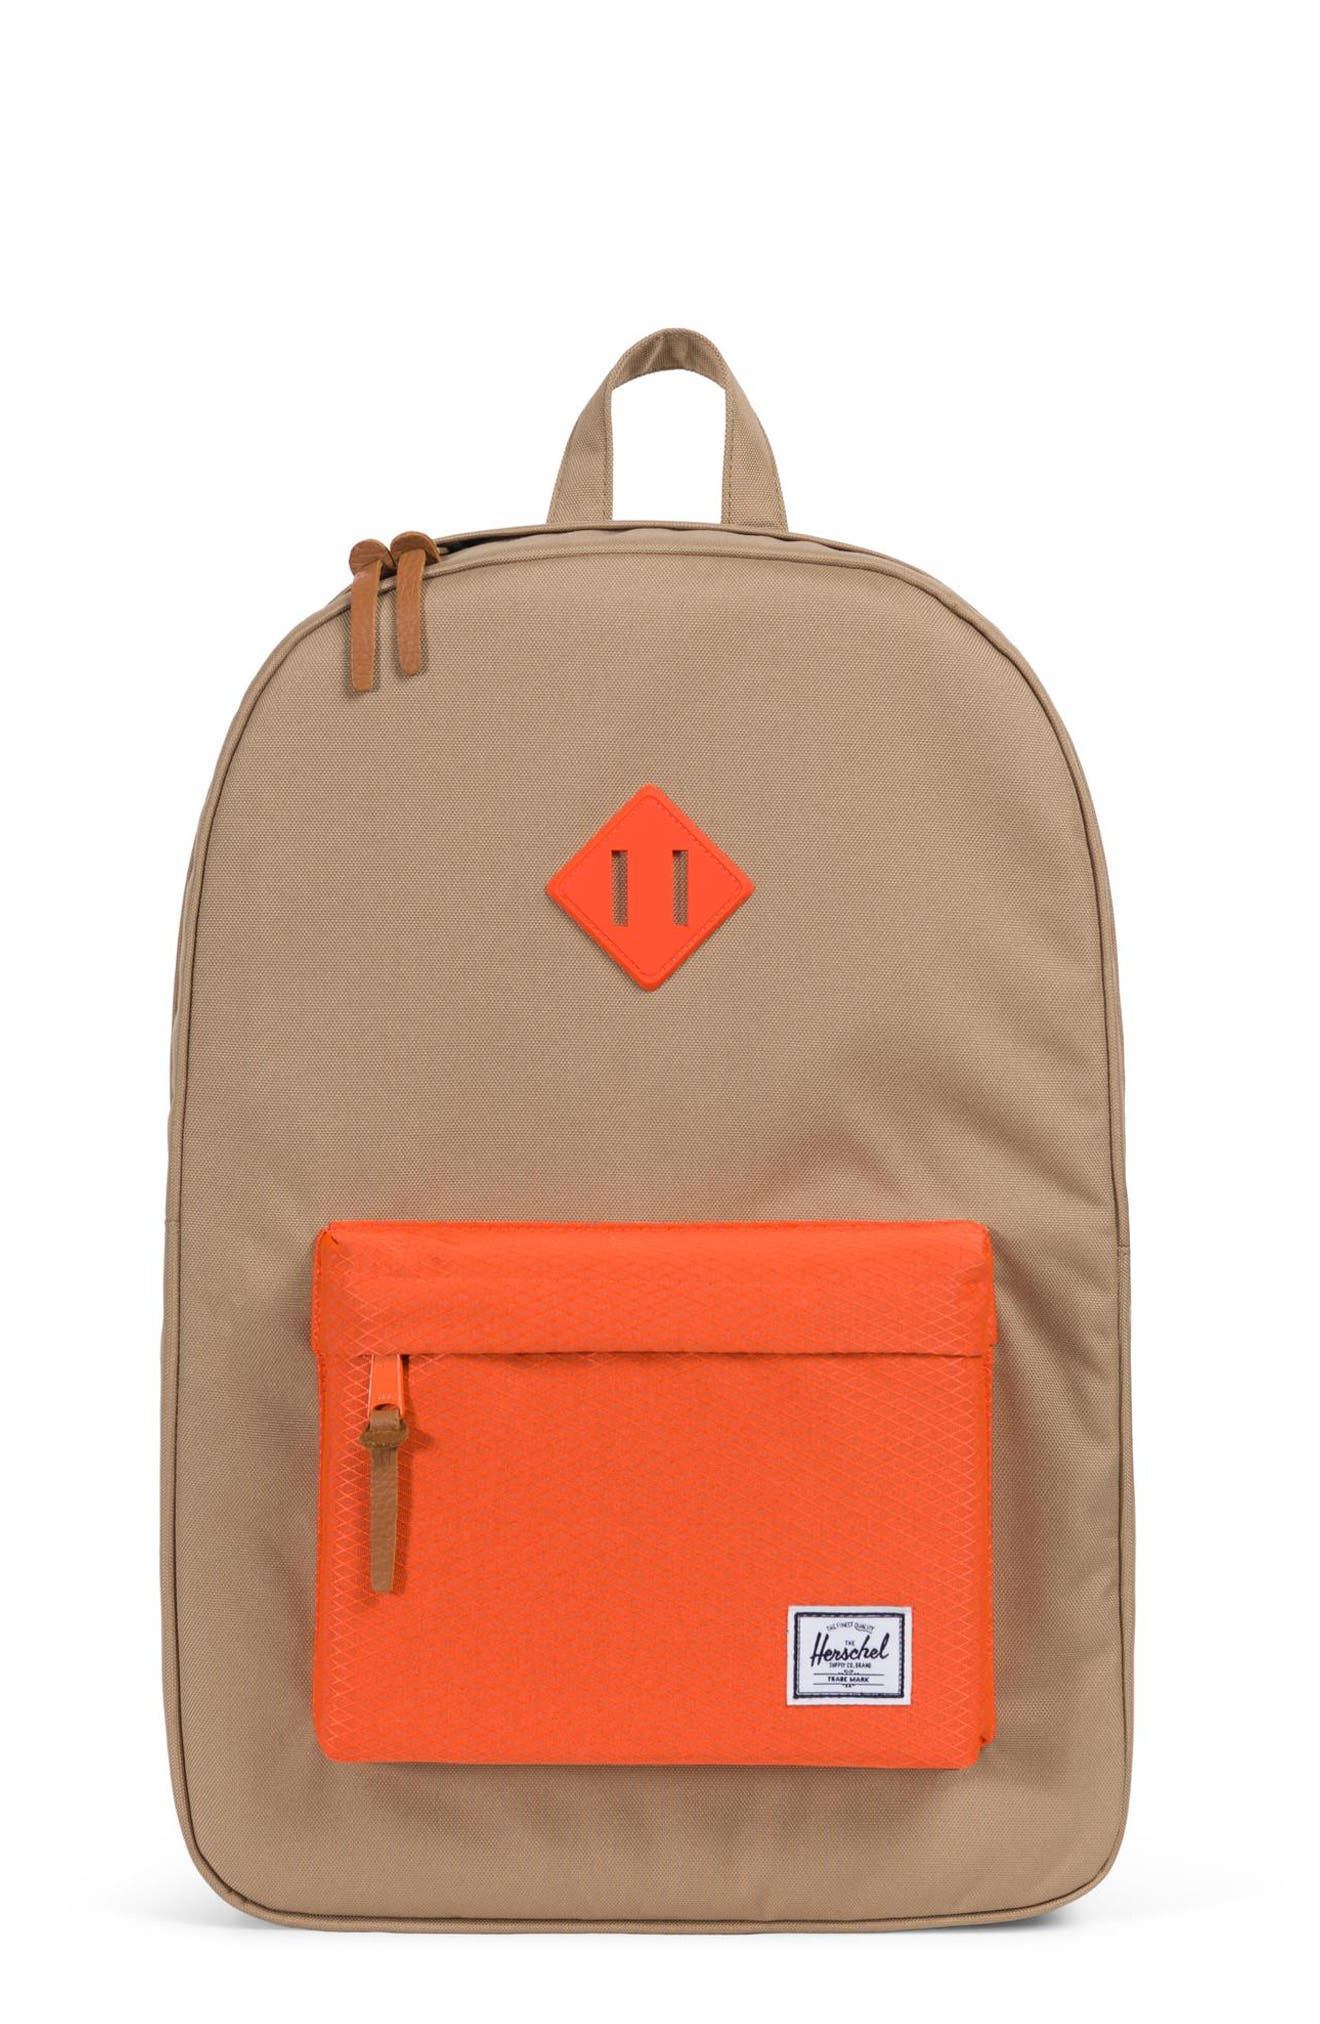 Herschel Supply Co. Heritage Backpack - Beige